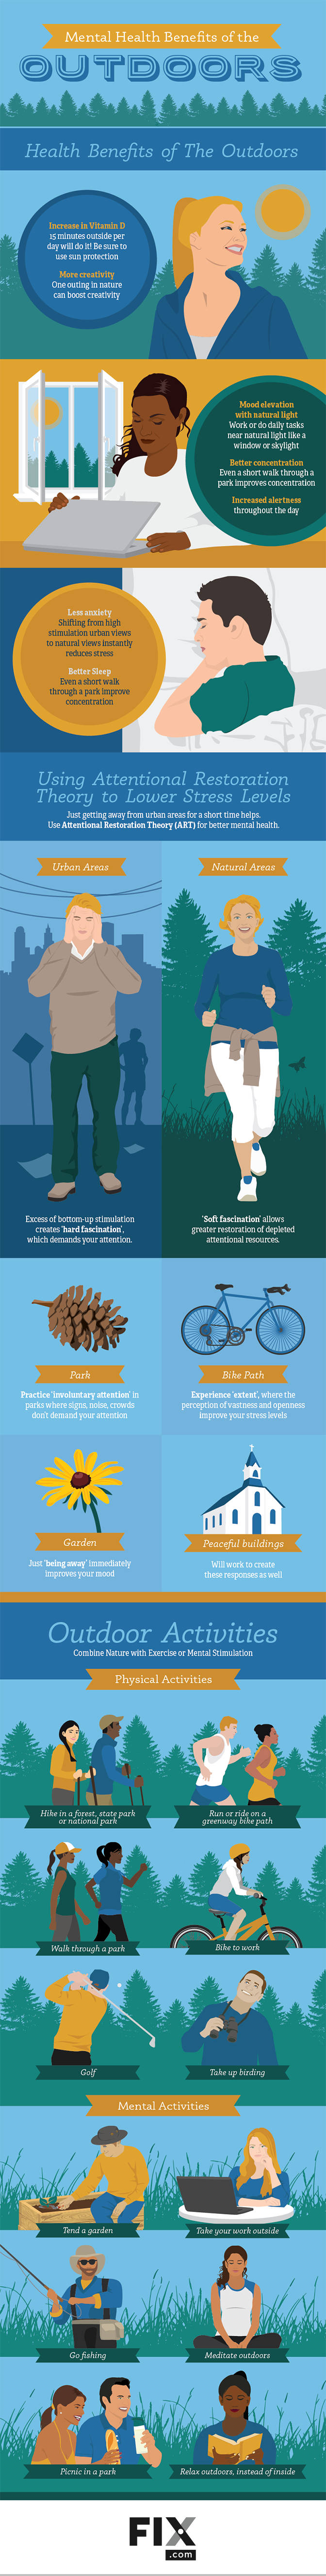 health benefits of the outdoors